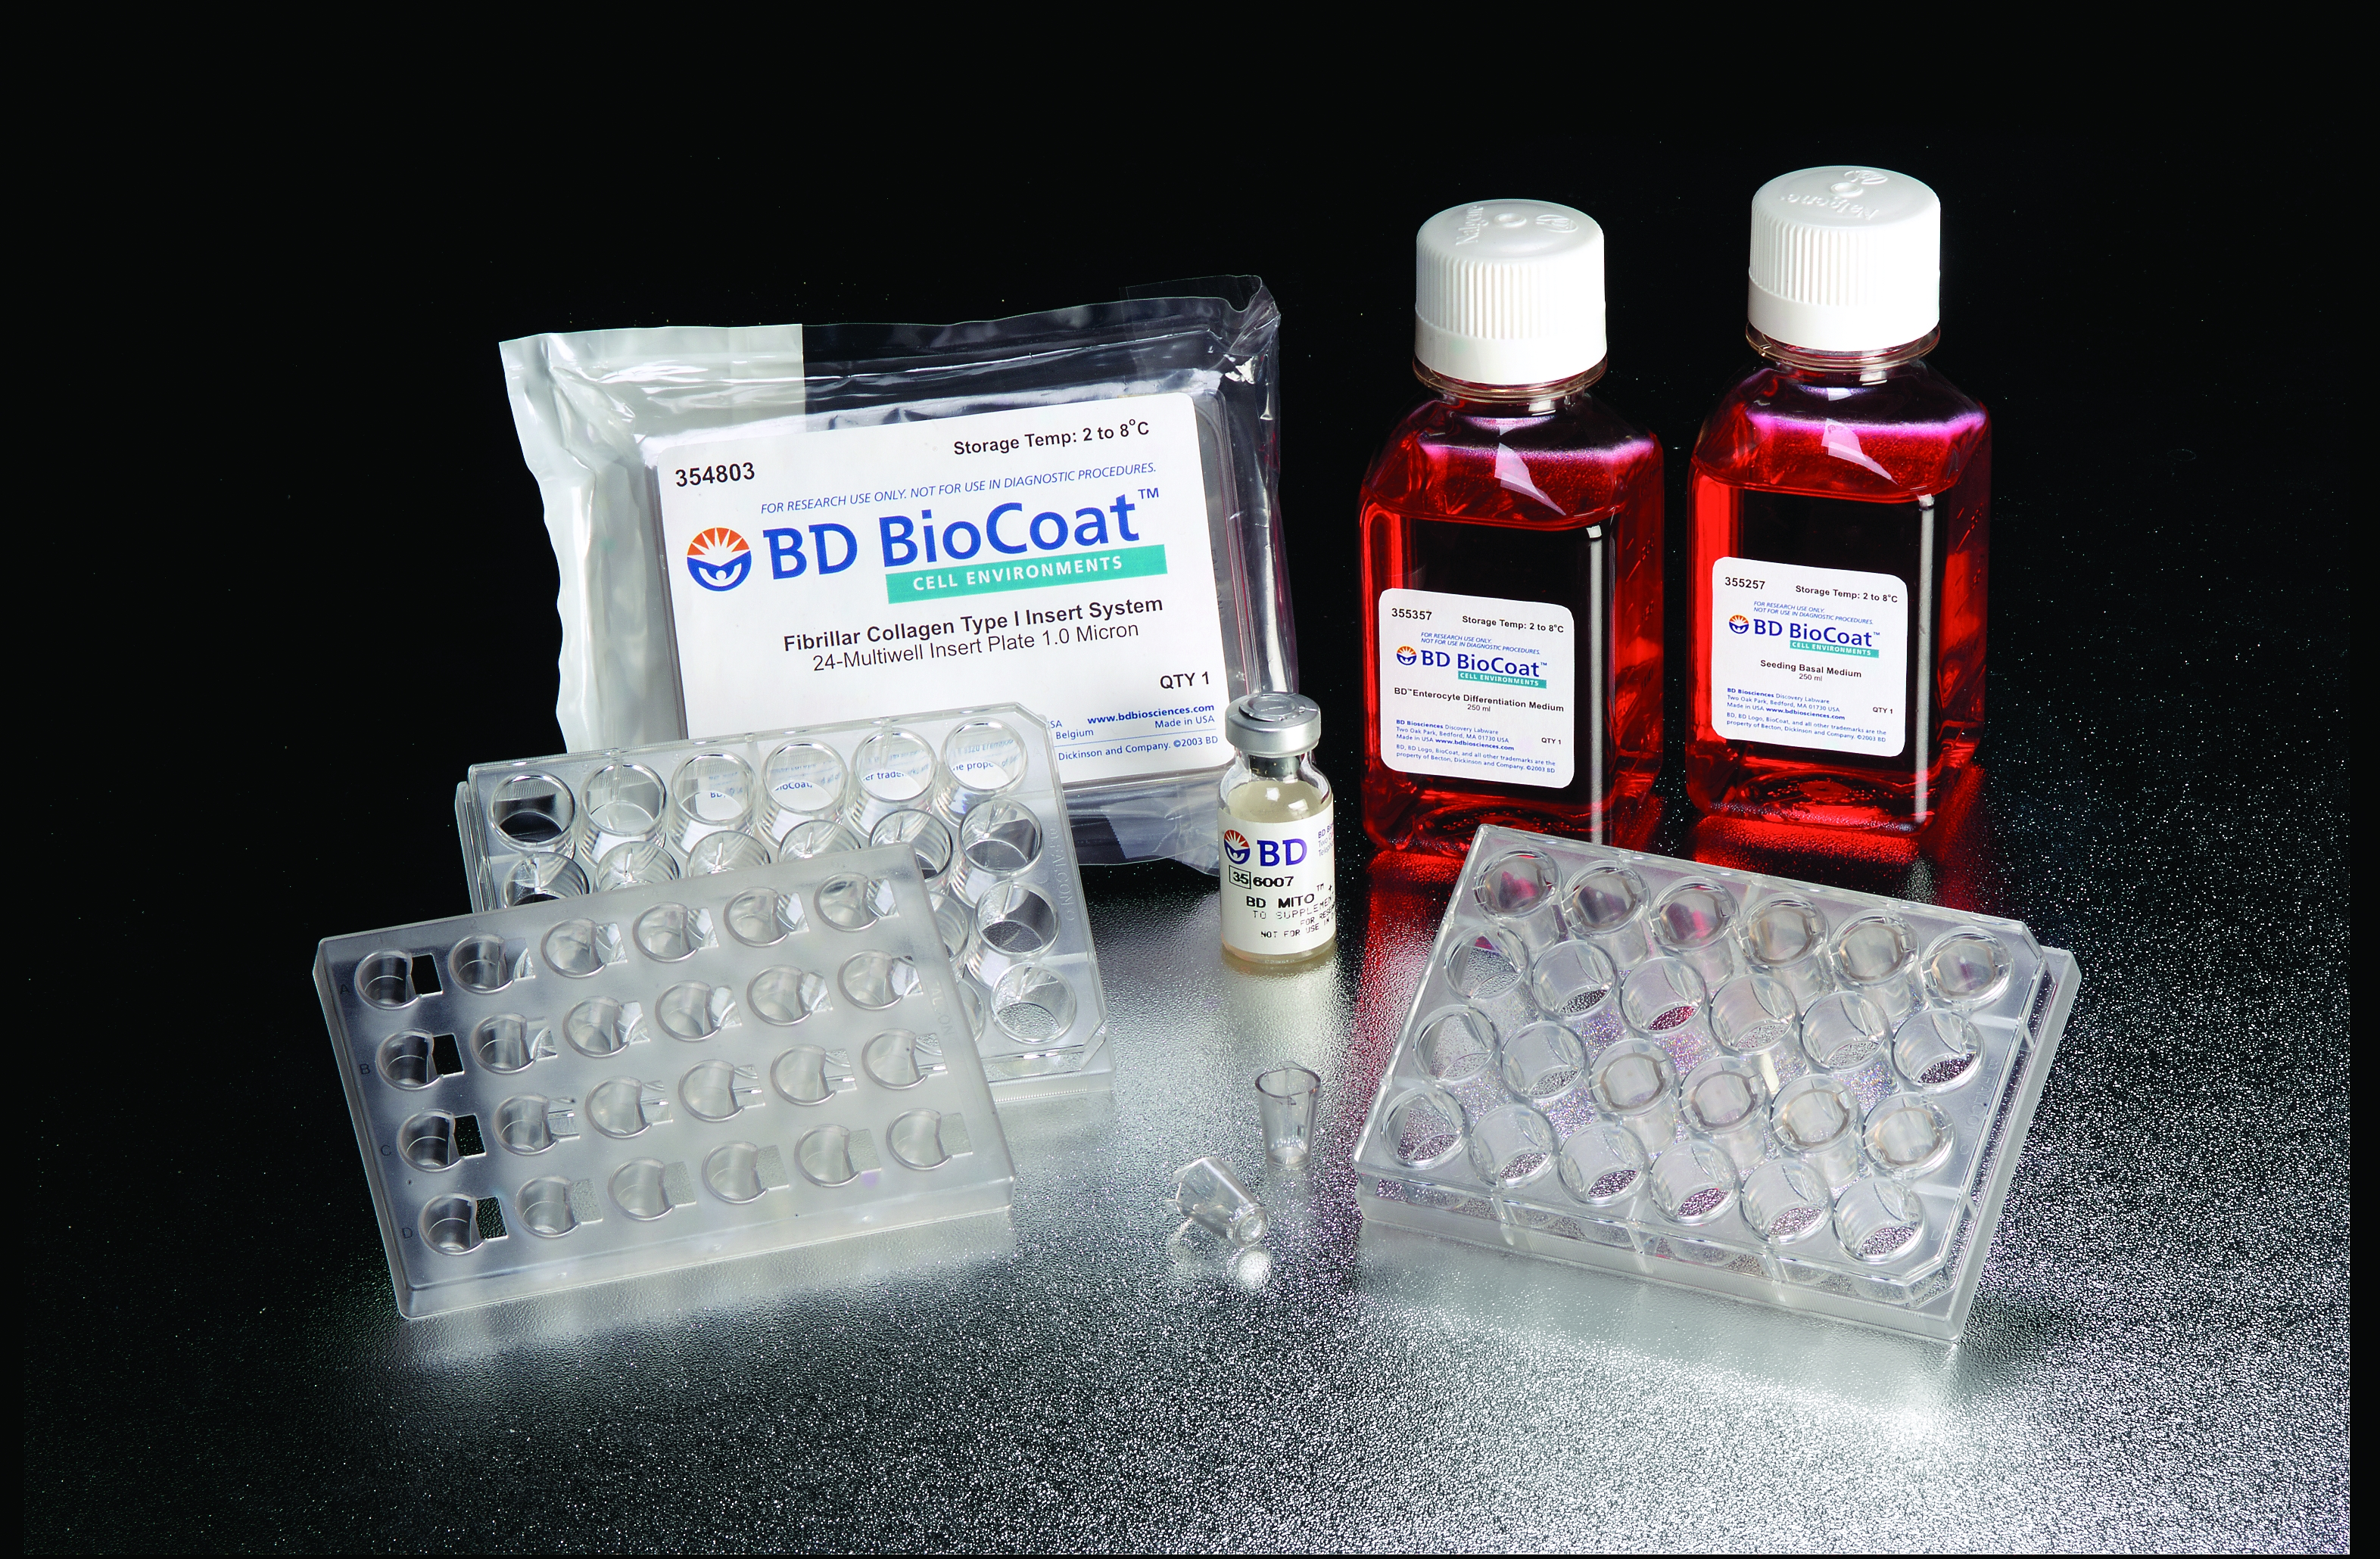 Corning™ BioCoat™ Matrigel™ Invasion Chamber: With GFR